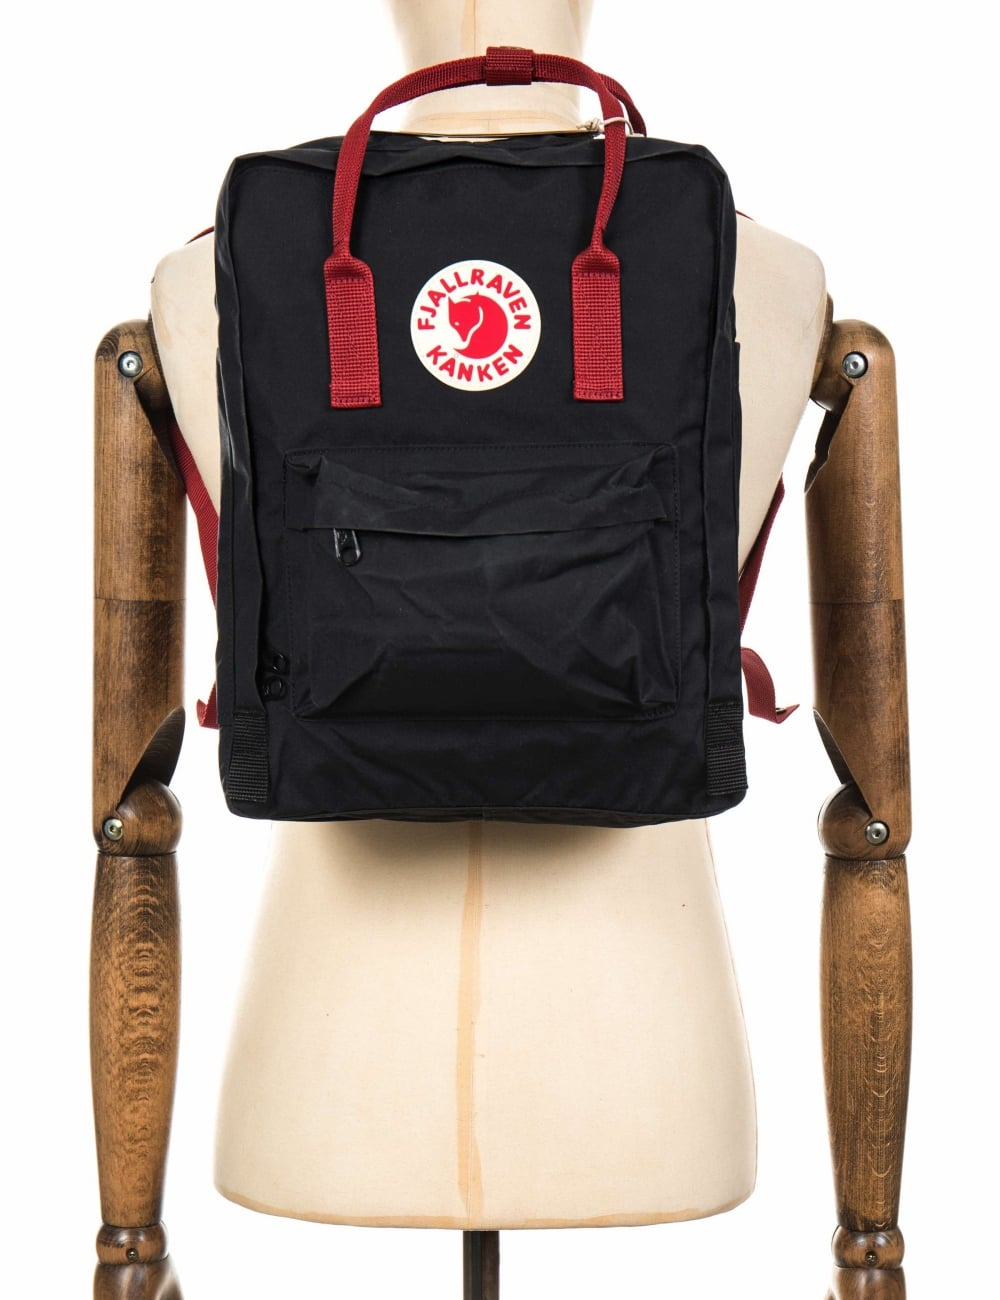 543f9d7cda8 Fjallraven Kanken Classic Backpack - Black-Ox Red - Accessories from ...